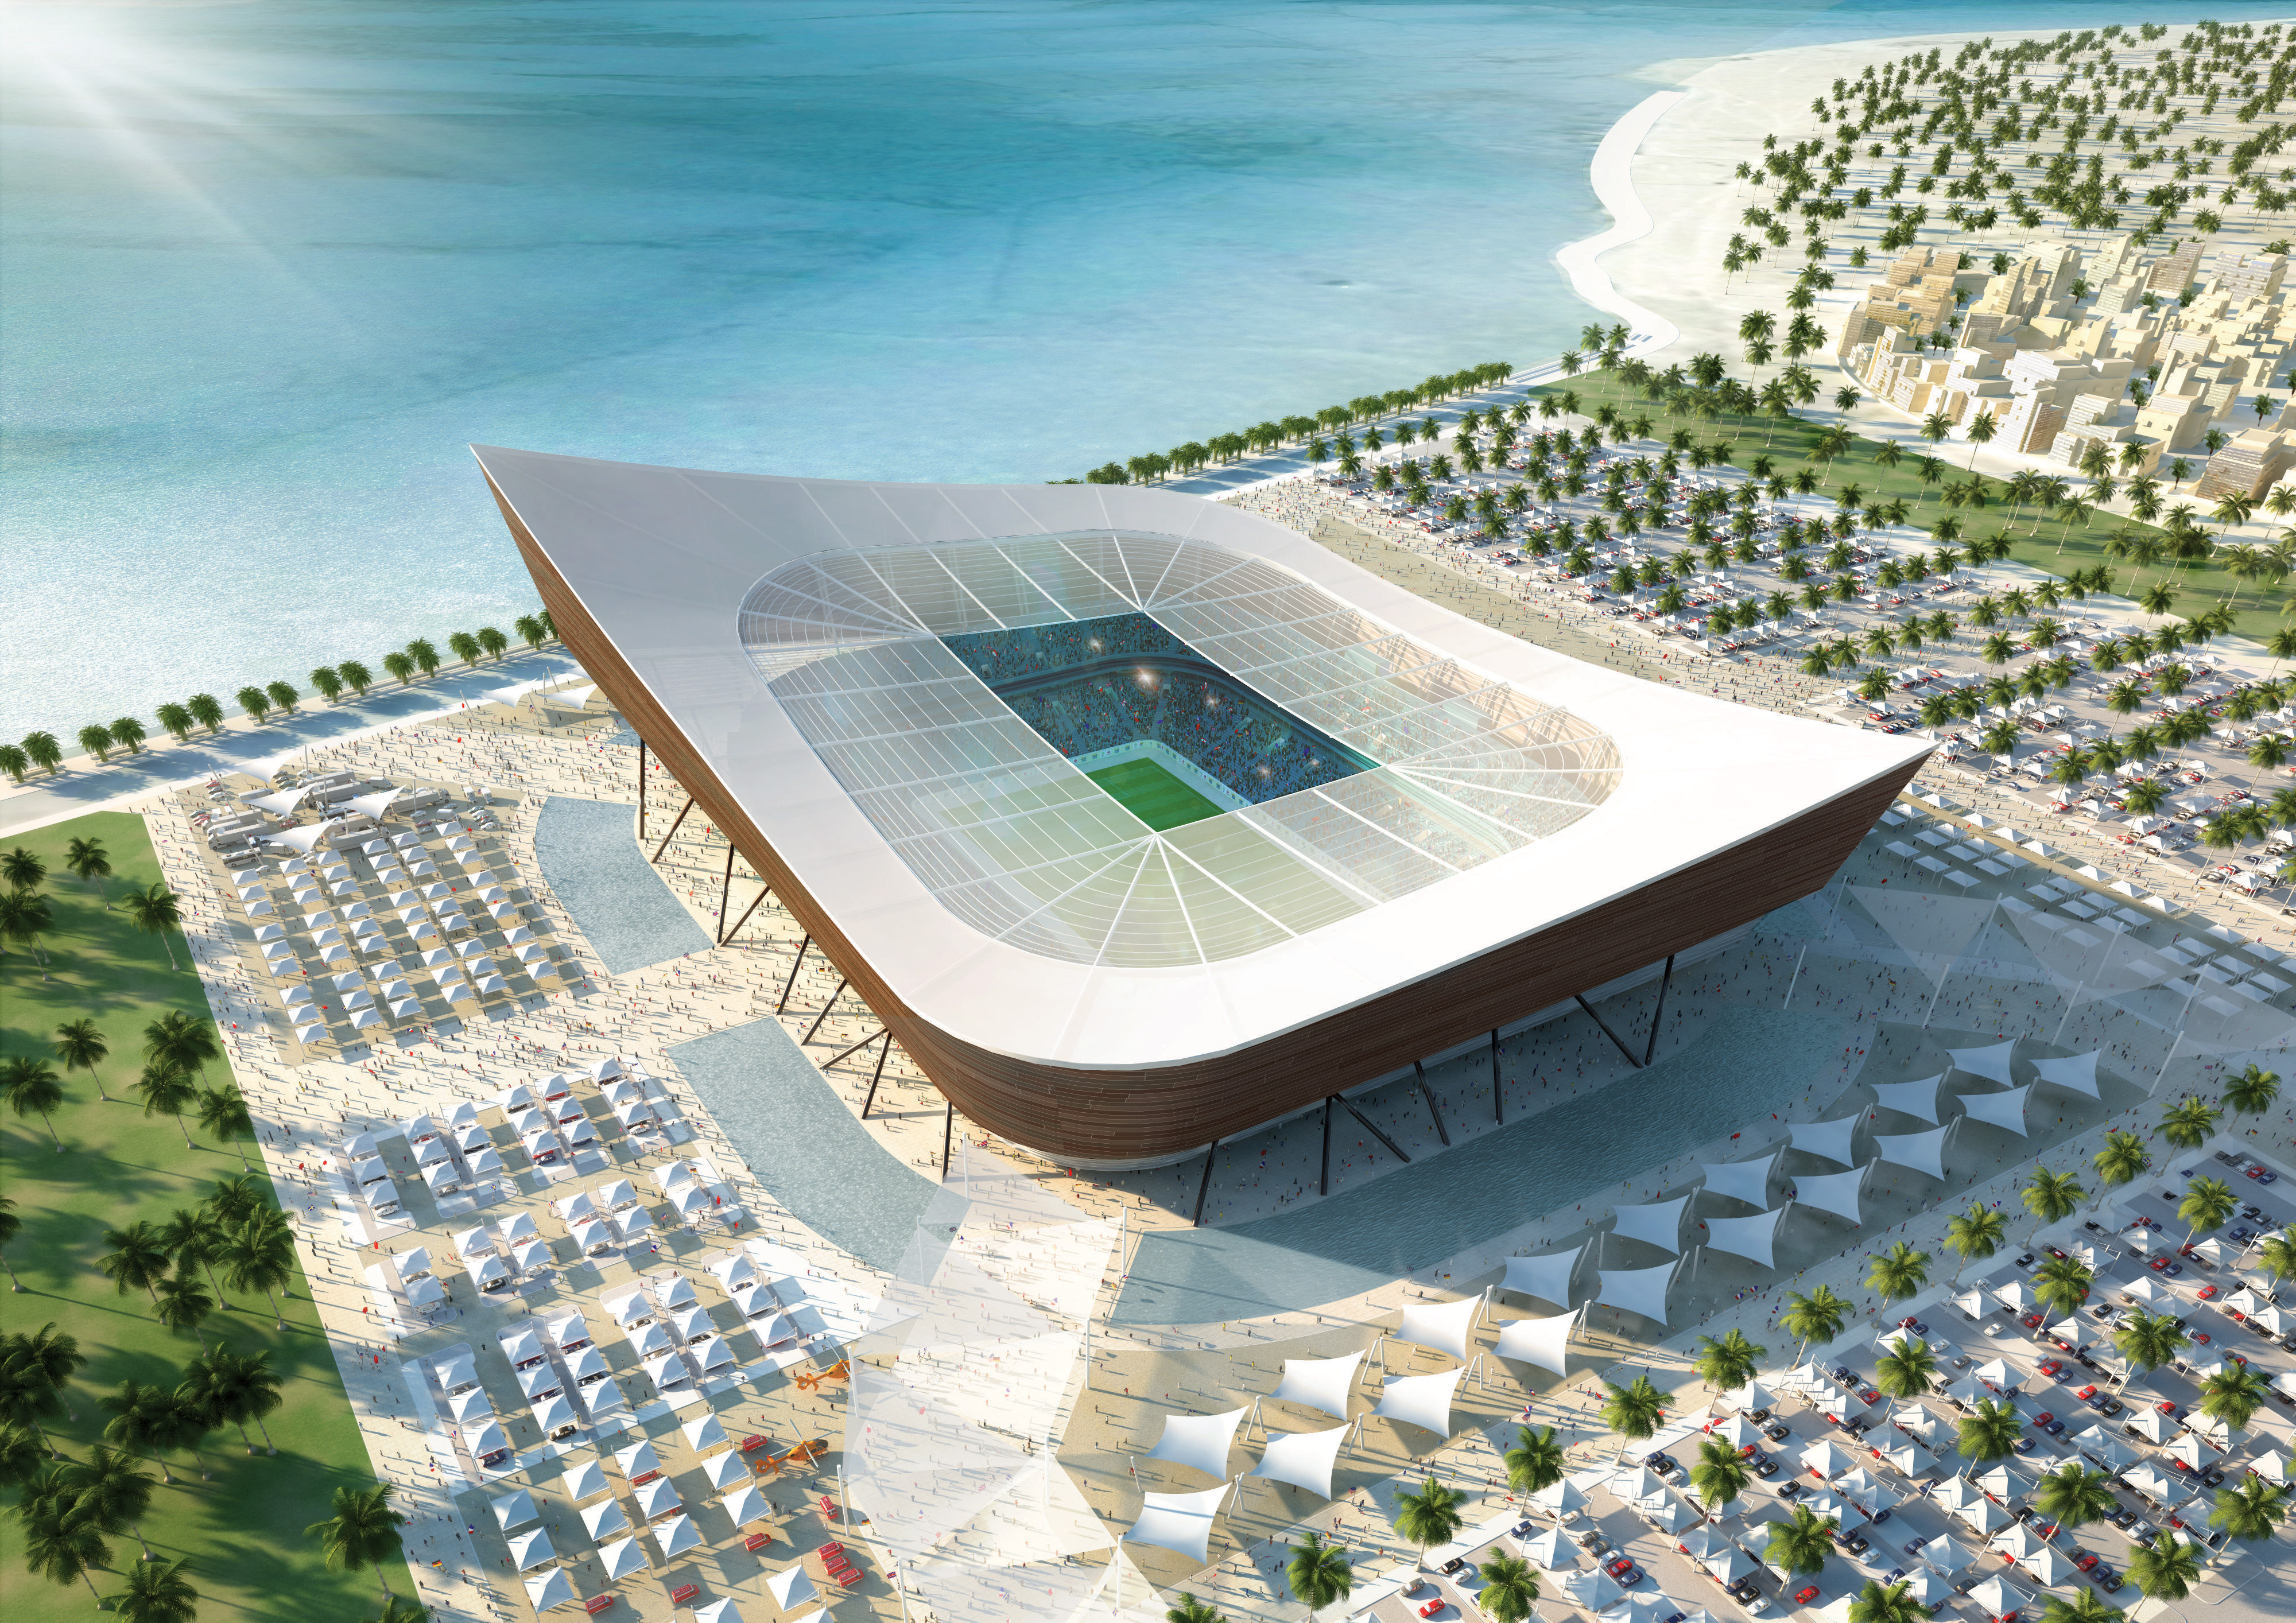 AL SHAMAL, QATAR:  In this artist's illustration provided by Qatar 2022/HH Vision, an aerial view is displayed of a 45,120 capacity stadium located in Al-Shamal in the north of Qatar, on the edge of the Arabian Gulf. The stadium's bowl shape design is der